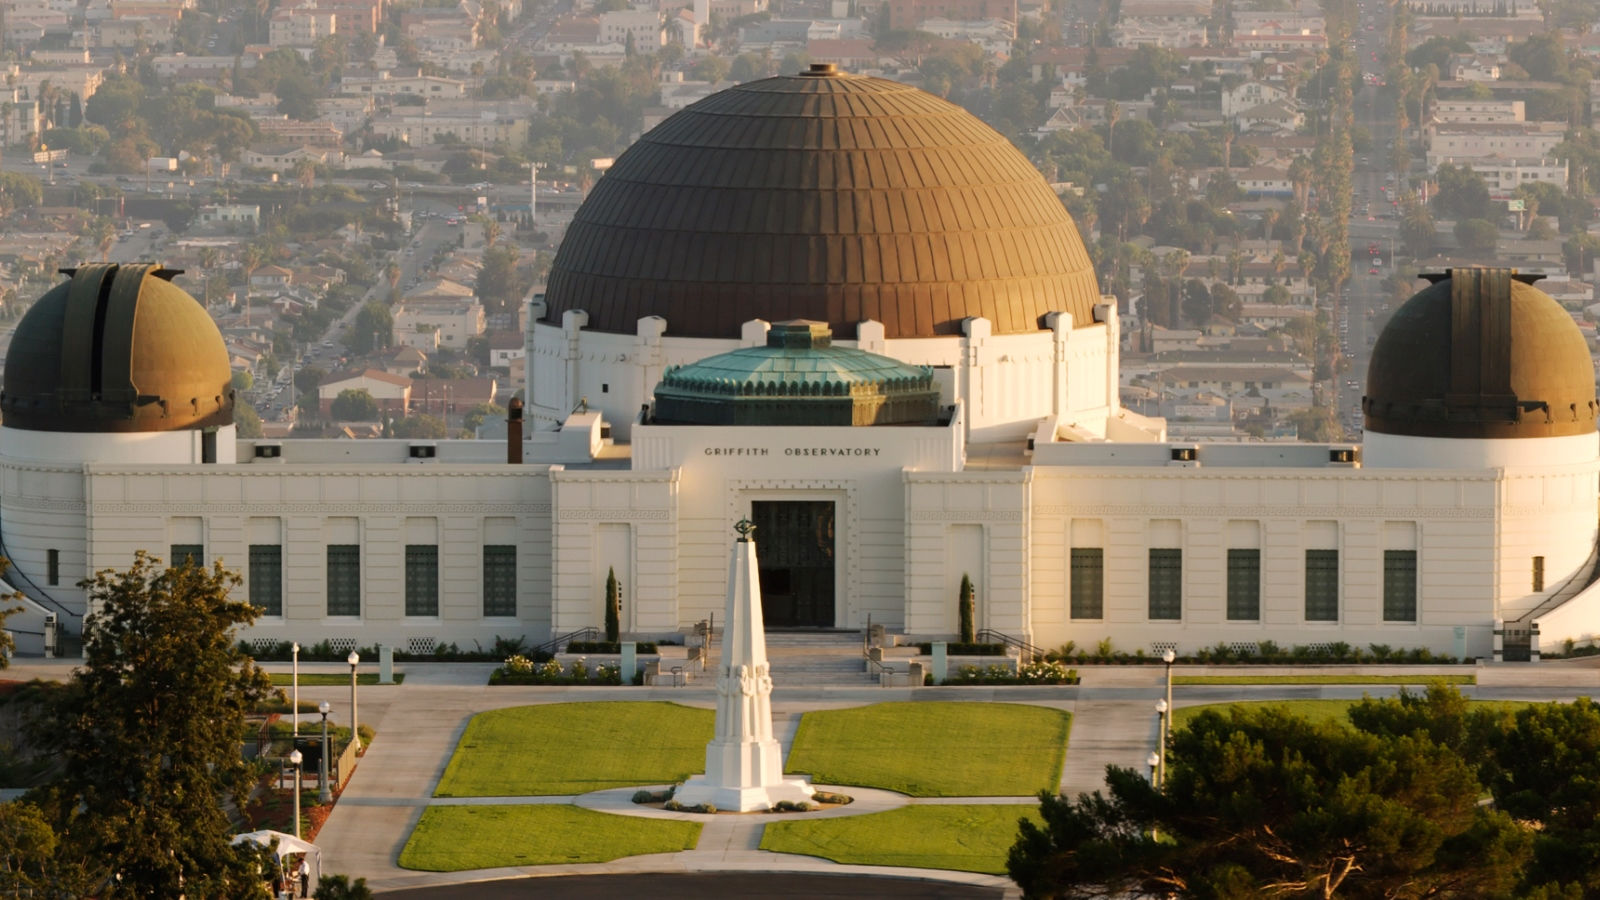 Things to do in Pasadena - Griffith Observatory